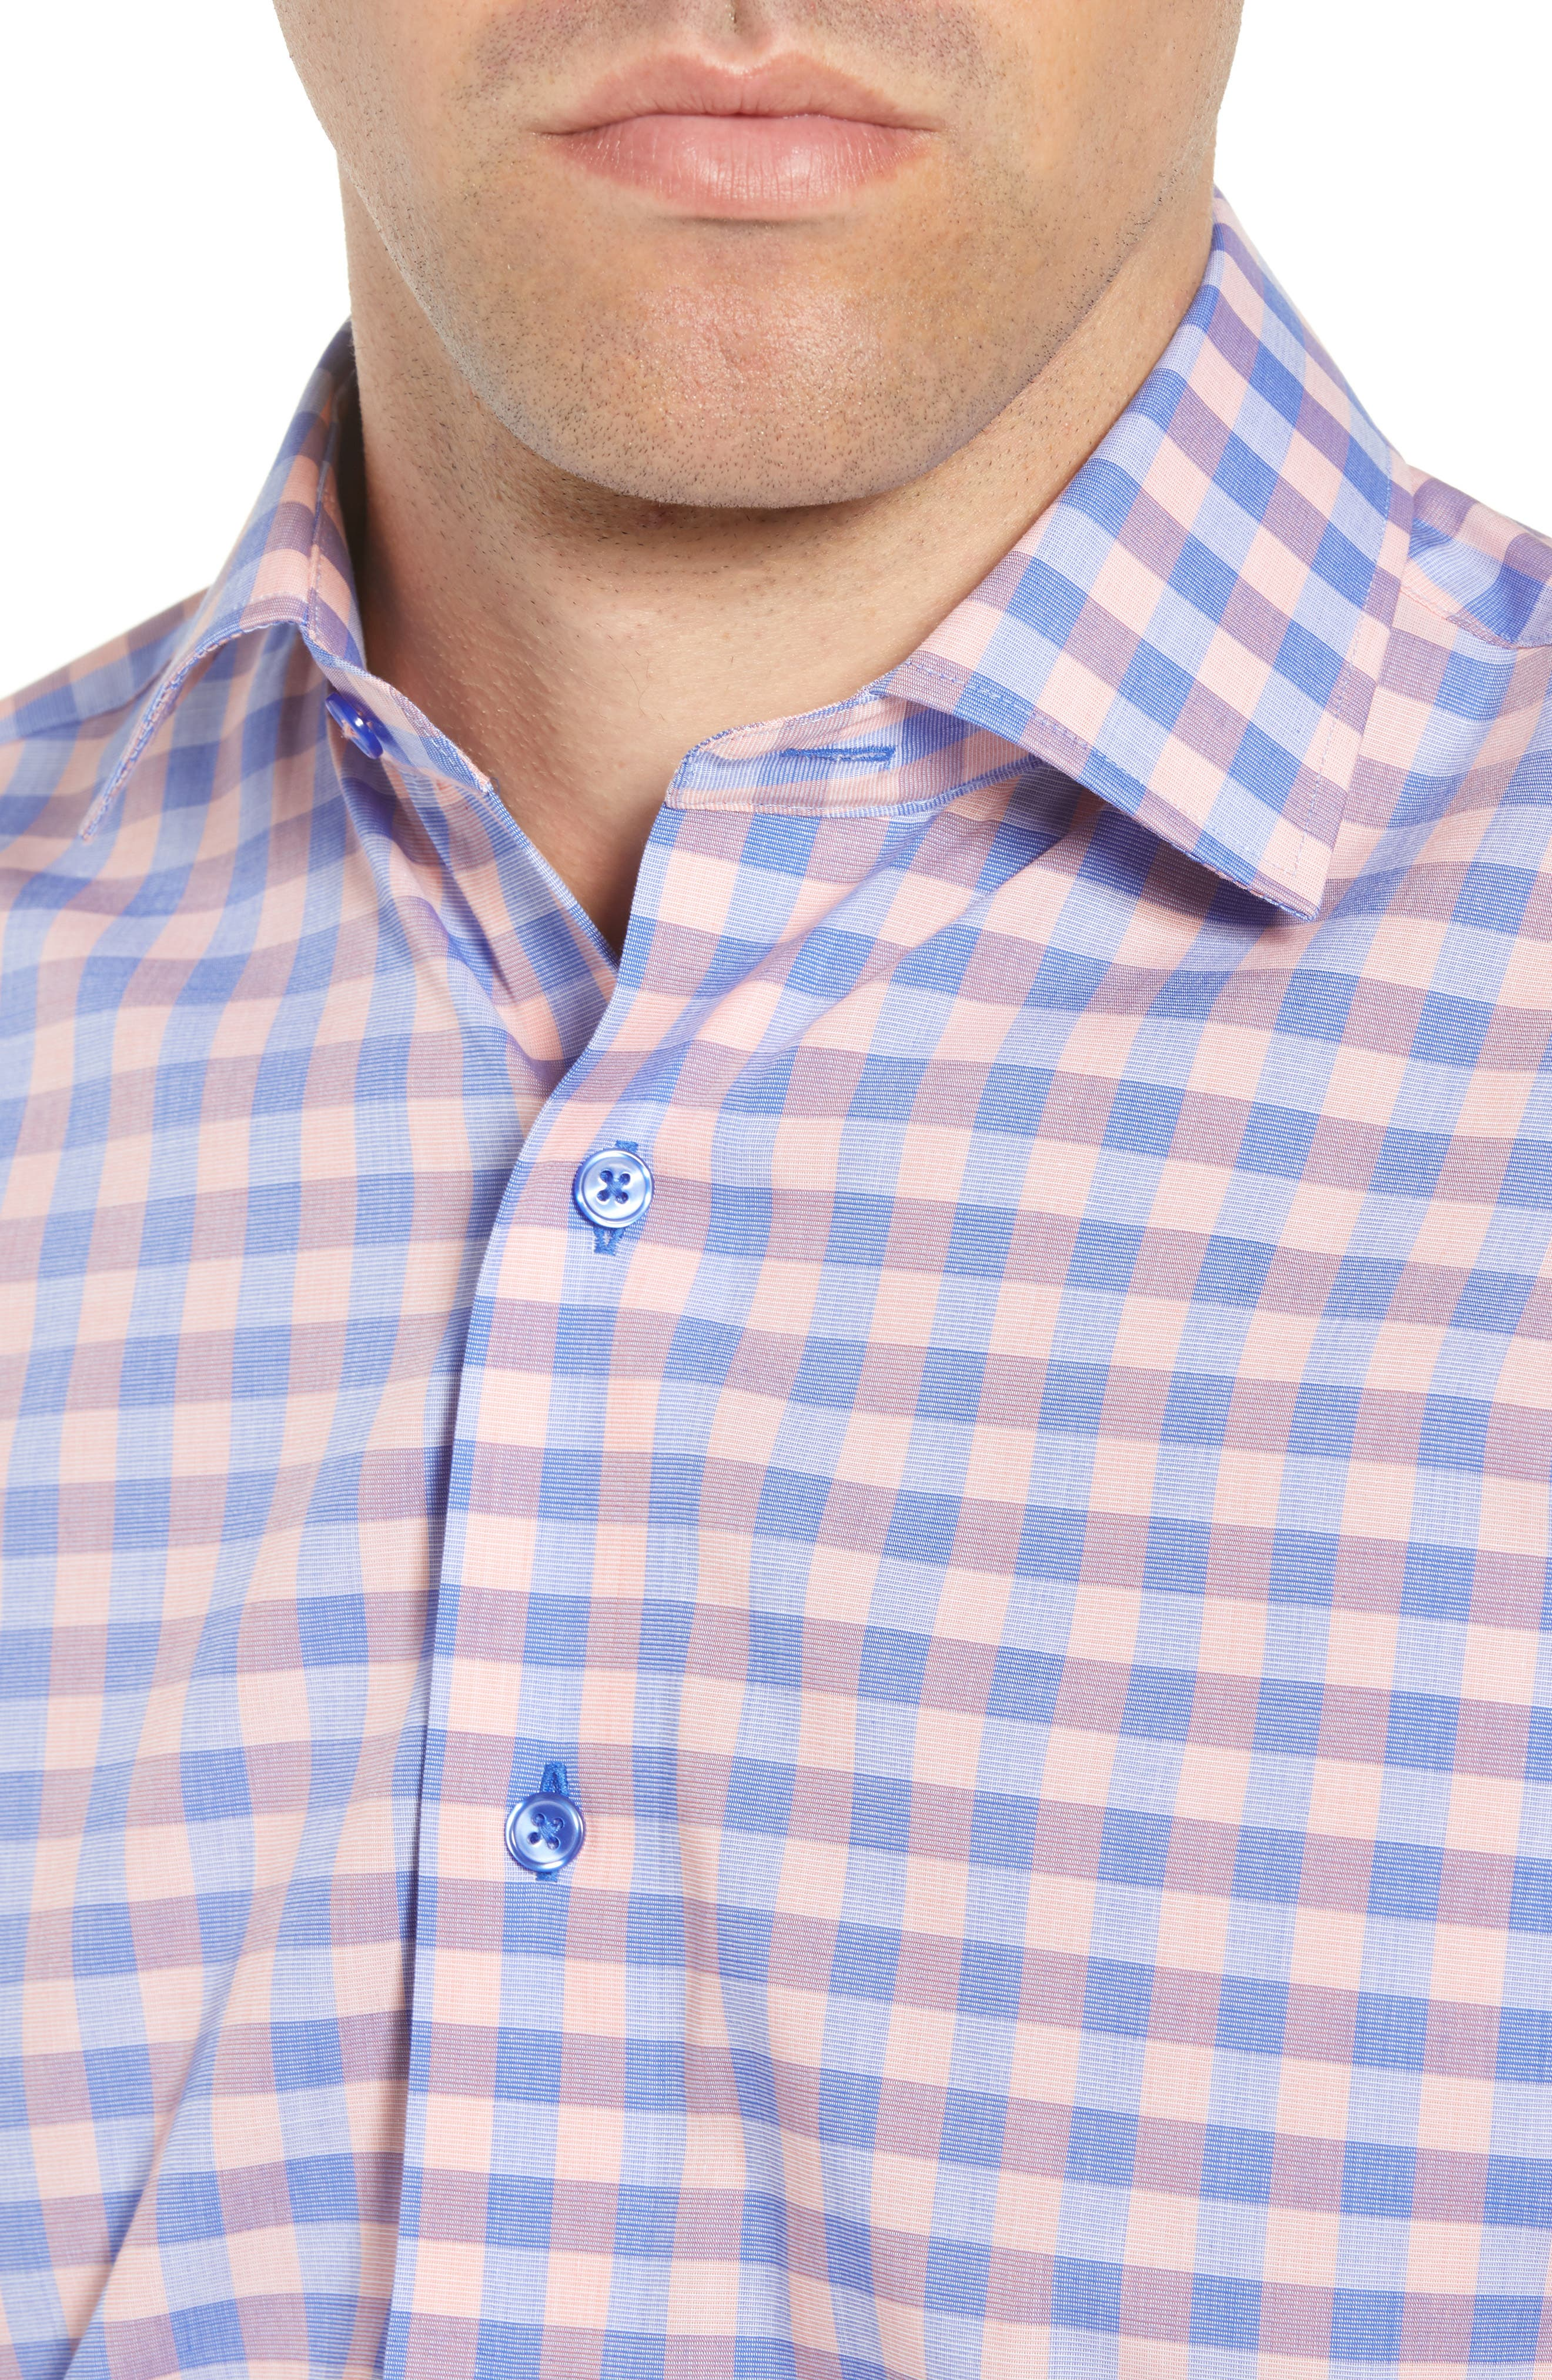 Trim Fit Check Dress Shirt,                             Alternate thumbnail 2, color,                             410